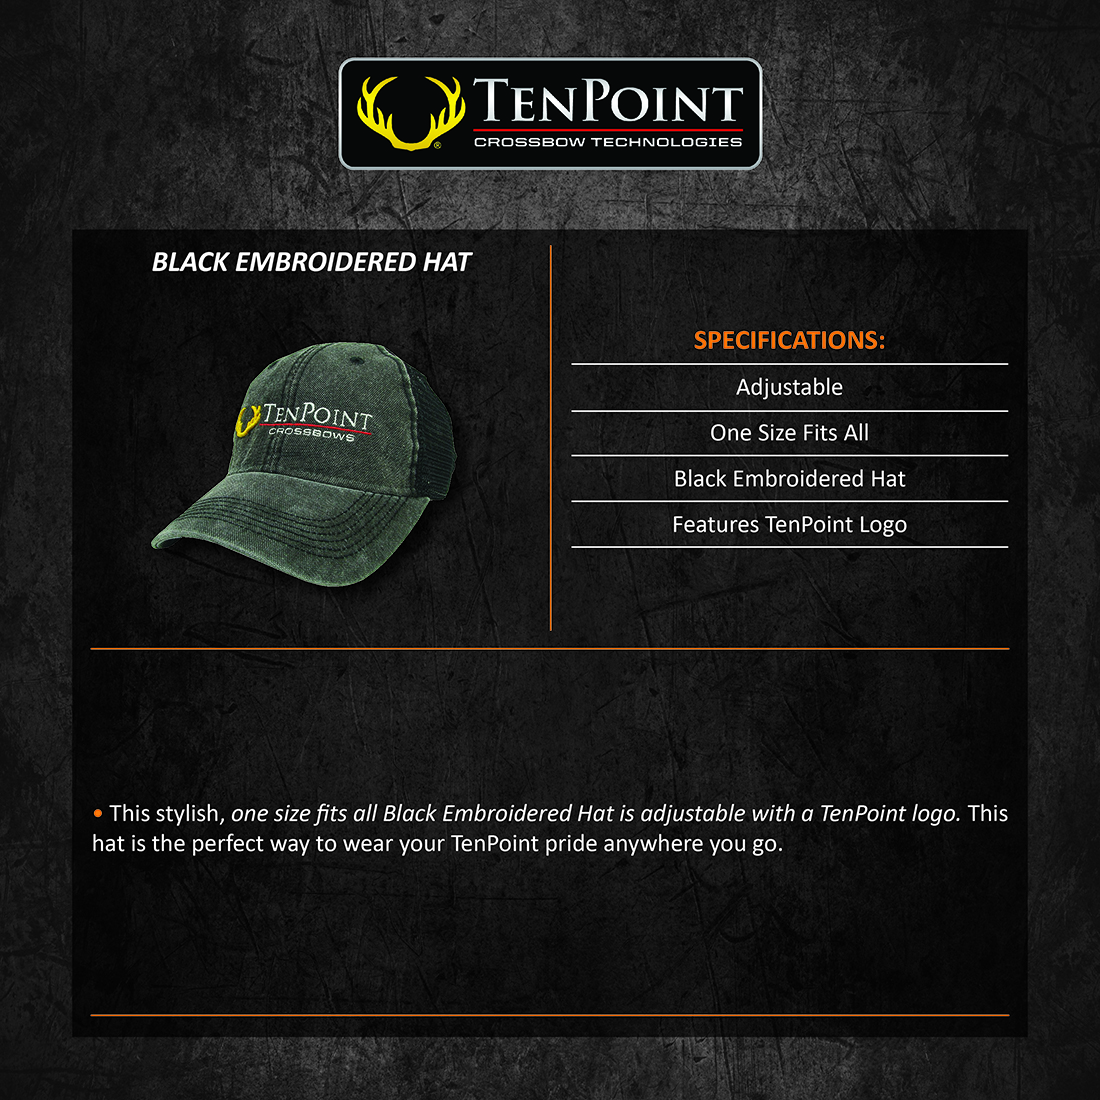 TenPoint_Black_Embroidered_Hat_Product_Description